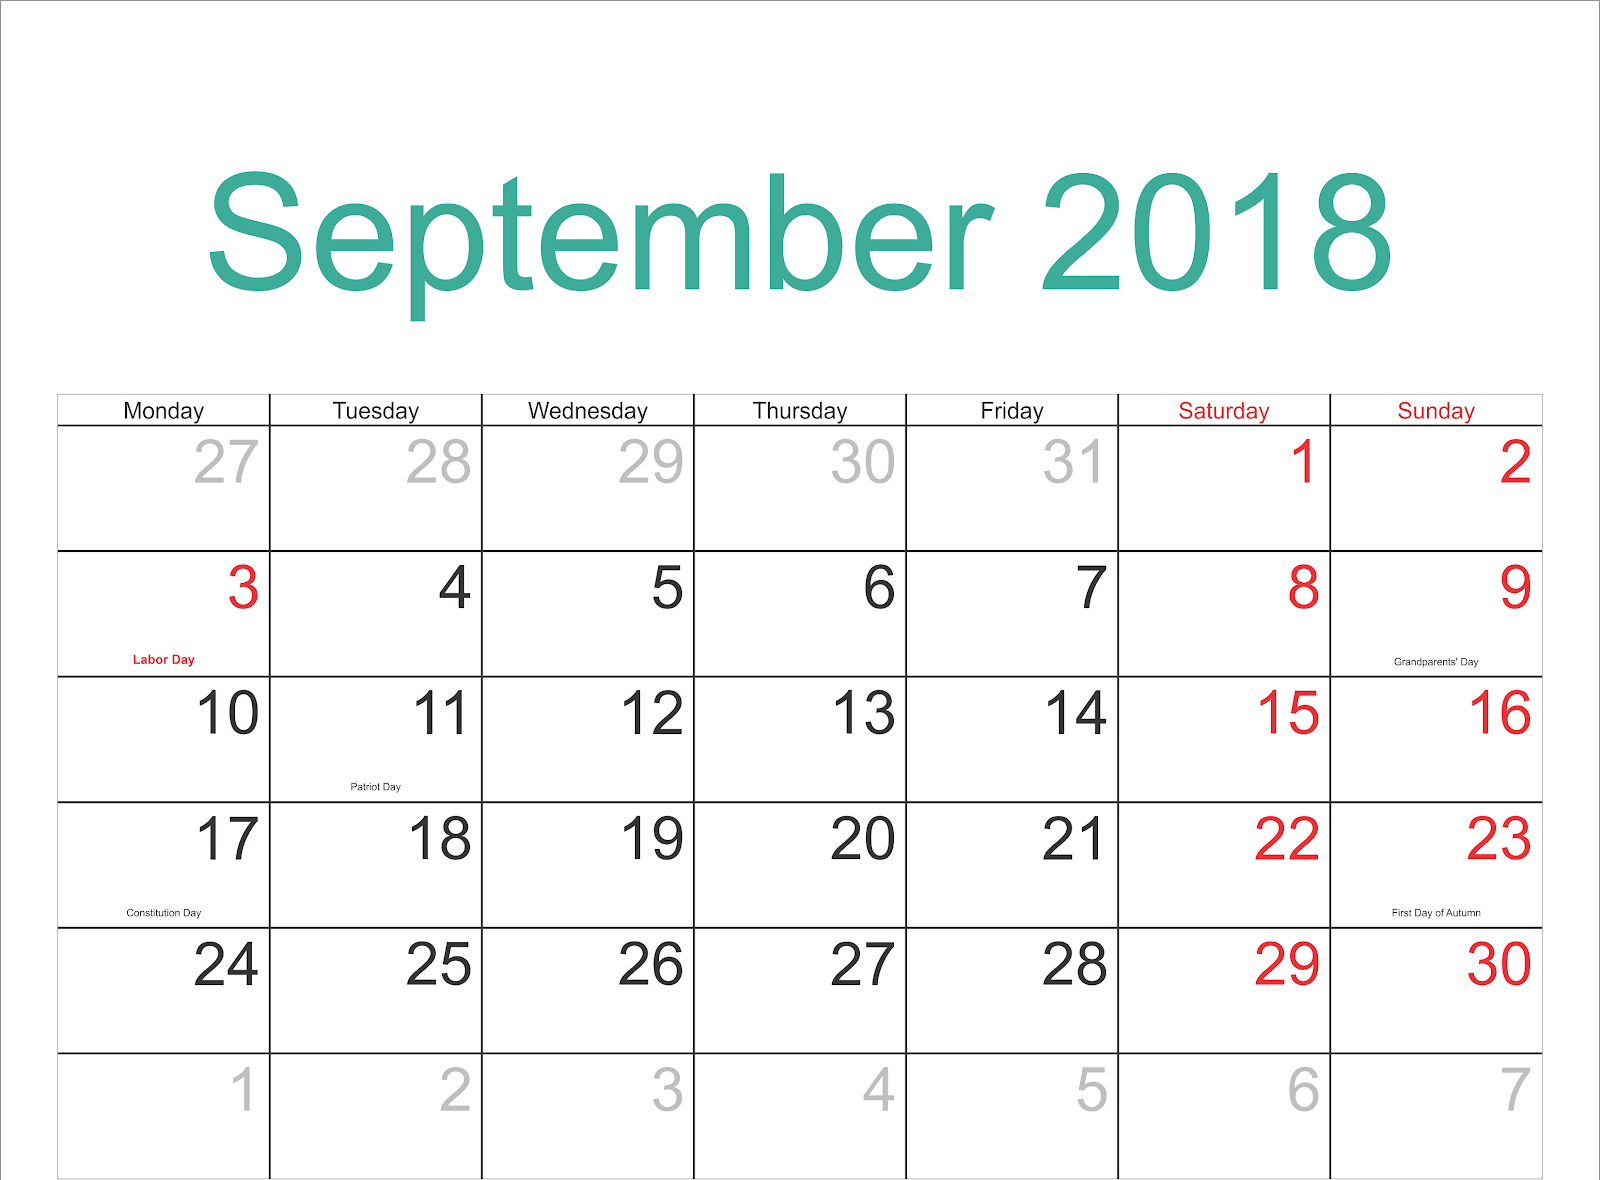 Holiday Calendar 2018 September